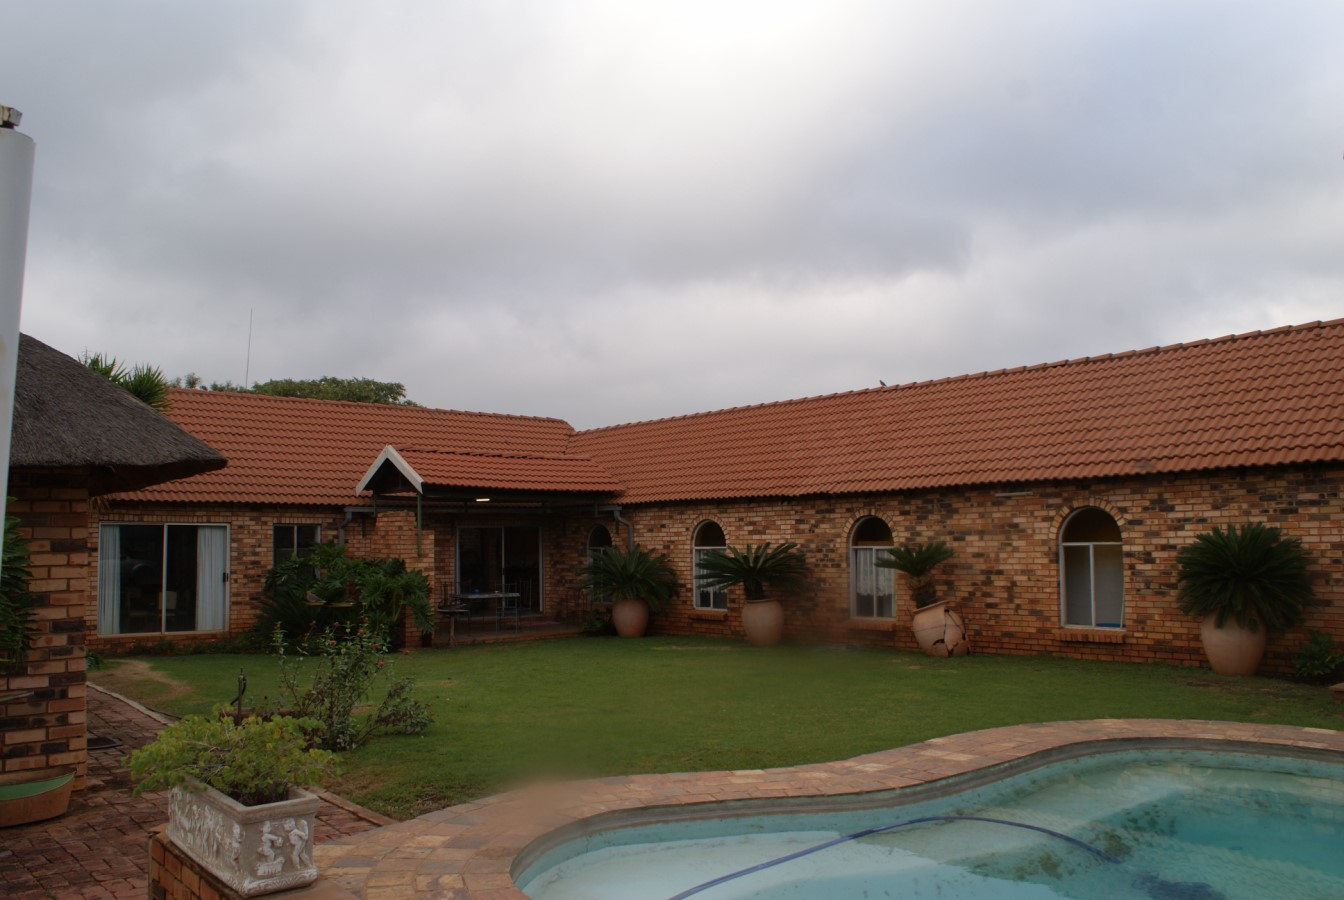 Smallholding for sale---Priced to go. Between Pretoria and Brits